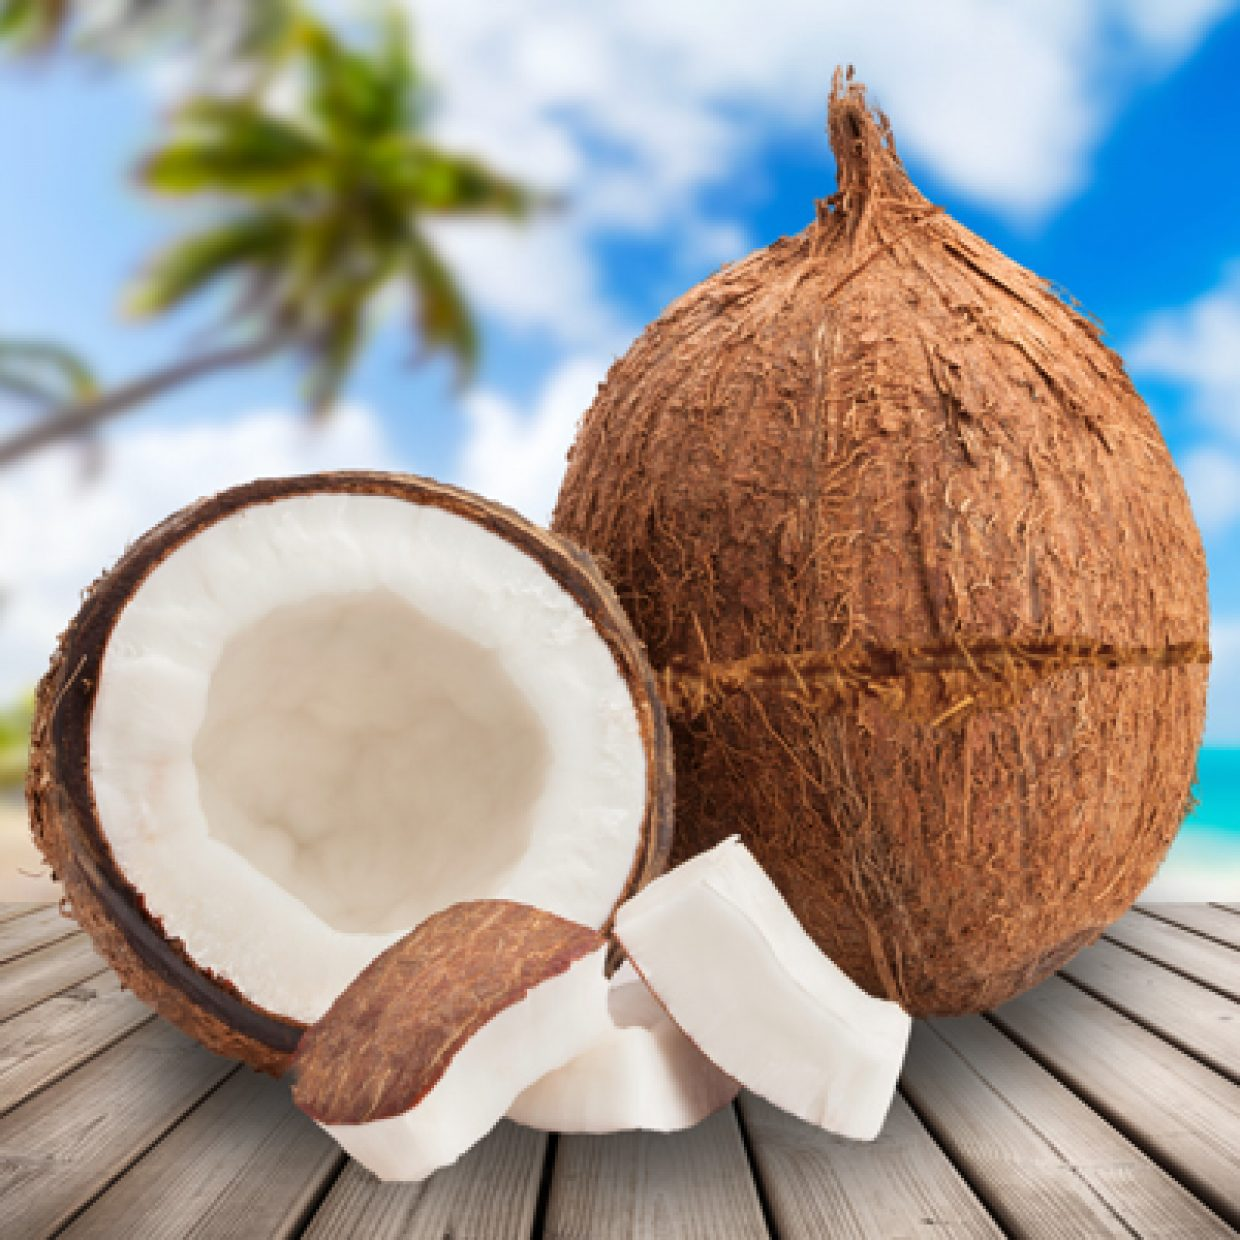 The coconut with the groove